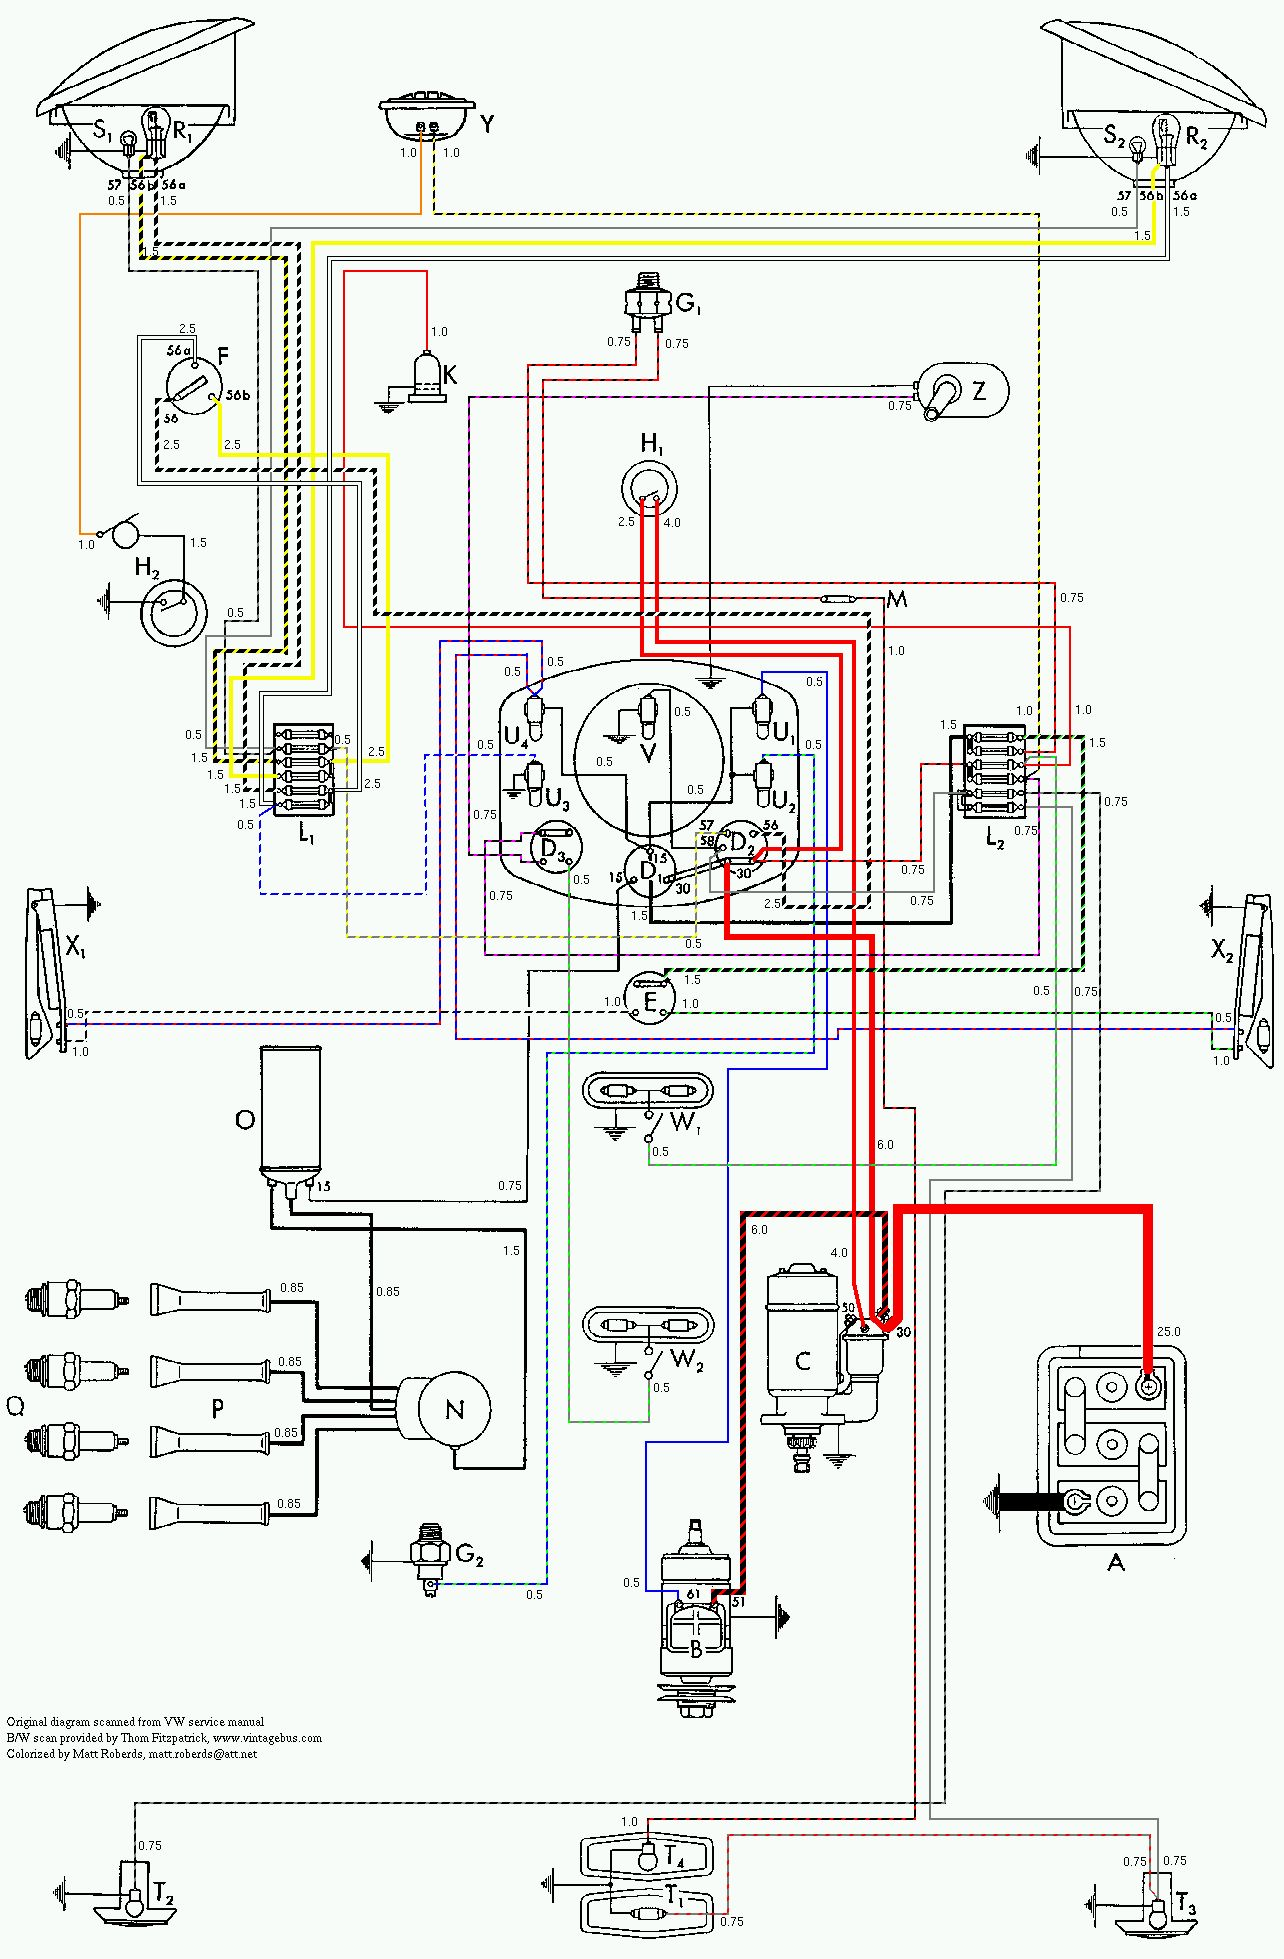 1989 Vw Cabriolet Wiring Diagram Radio Library Volkswagen Stereo Color Data Diagrams U2022 Rh 45 77 211 17